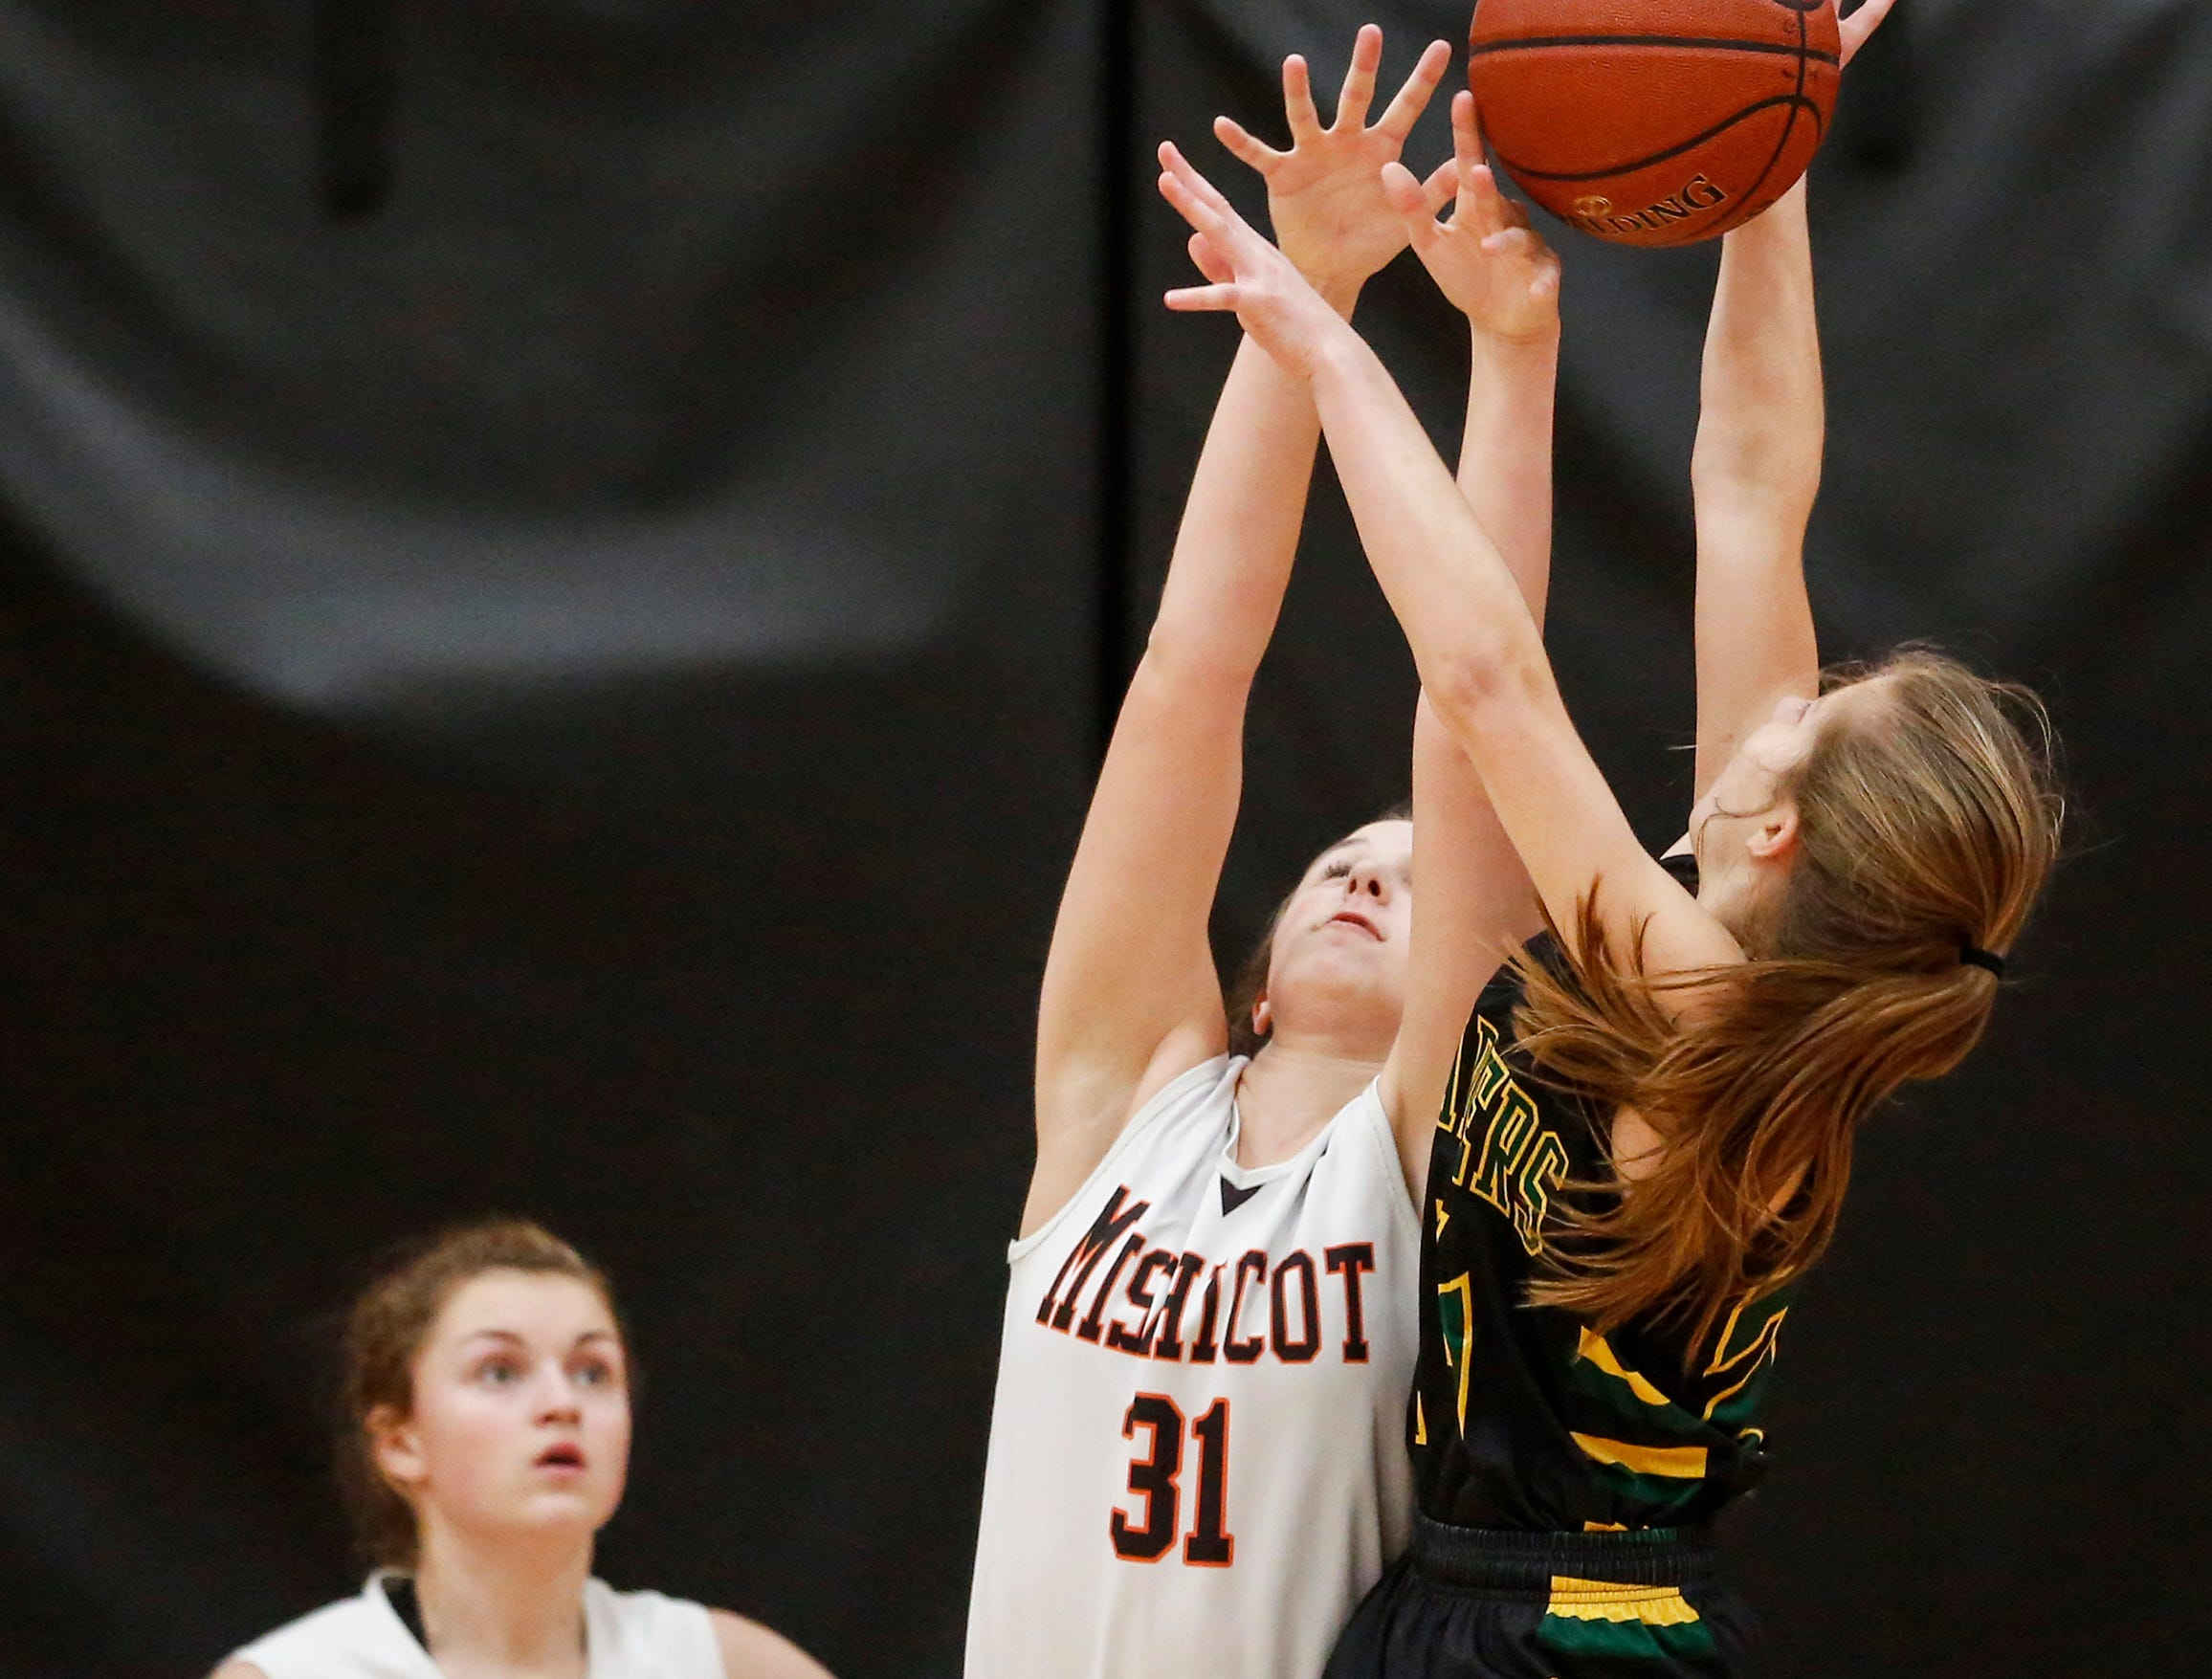 Mishicot's Kylie Schmidt blocks a shot from Sheboygan Area Lutheran's Hailey Schimberg (24) during a Big East Conference matchup at Mishicot High School Friday, January 11, 2019, in Mishicot, Wis. Joshua Clark/USA TODAY NETWORK-Wisconsin